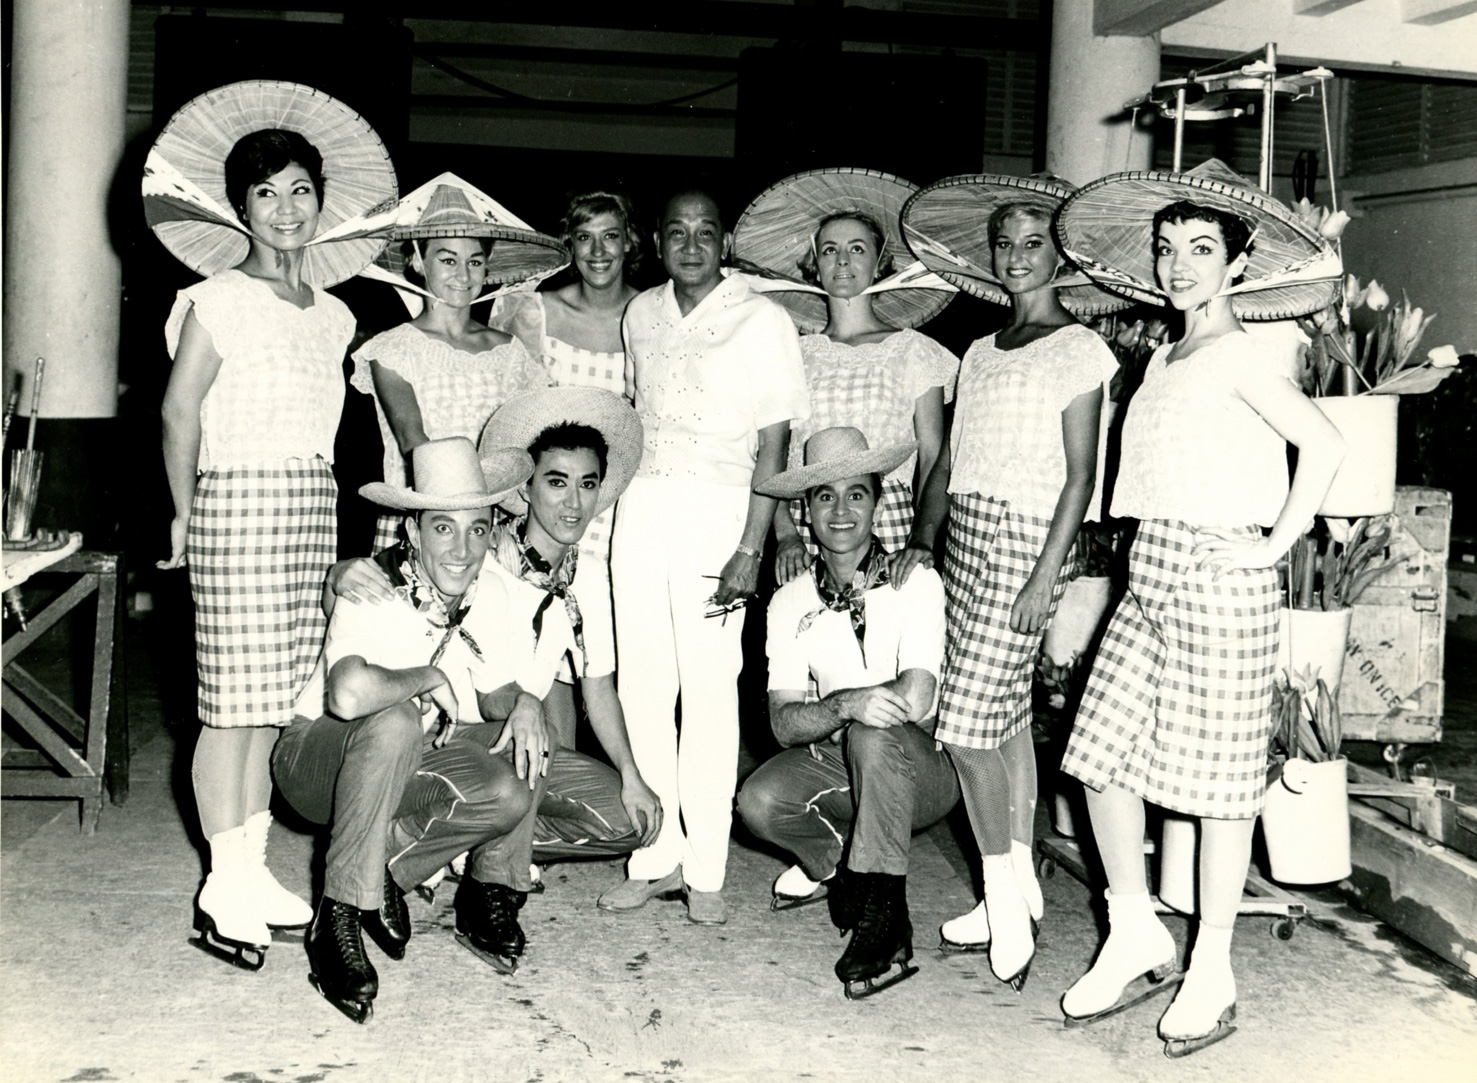 """The 1962 edition of """"Holiday on Ice"""" at the Araneta Coliseum, with the added """"Salakot"""" number, later in the run. The man in white outfit in the center is Mr. Big Dome presenter himself, J. Amado Araneta, with some of the """"Filipinized"""" skaters. (Photo courtesy of Roy Blakey)"""